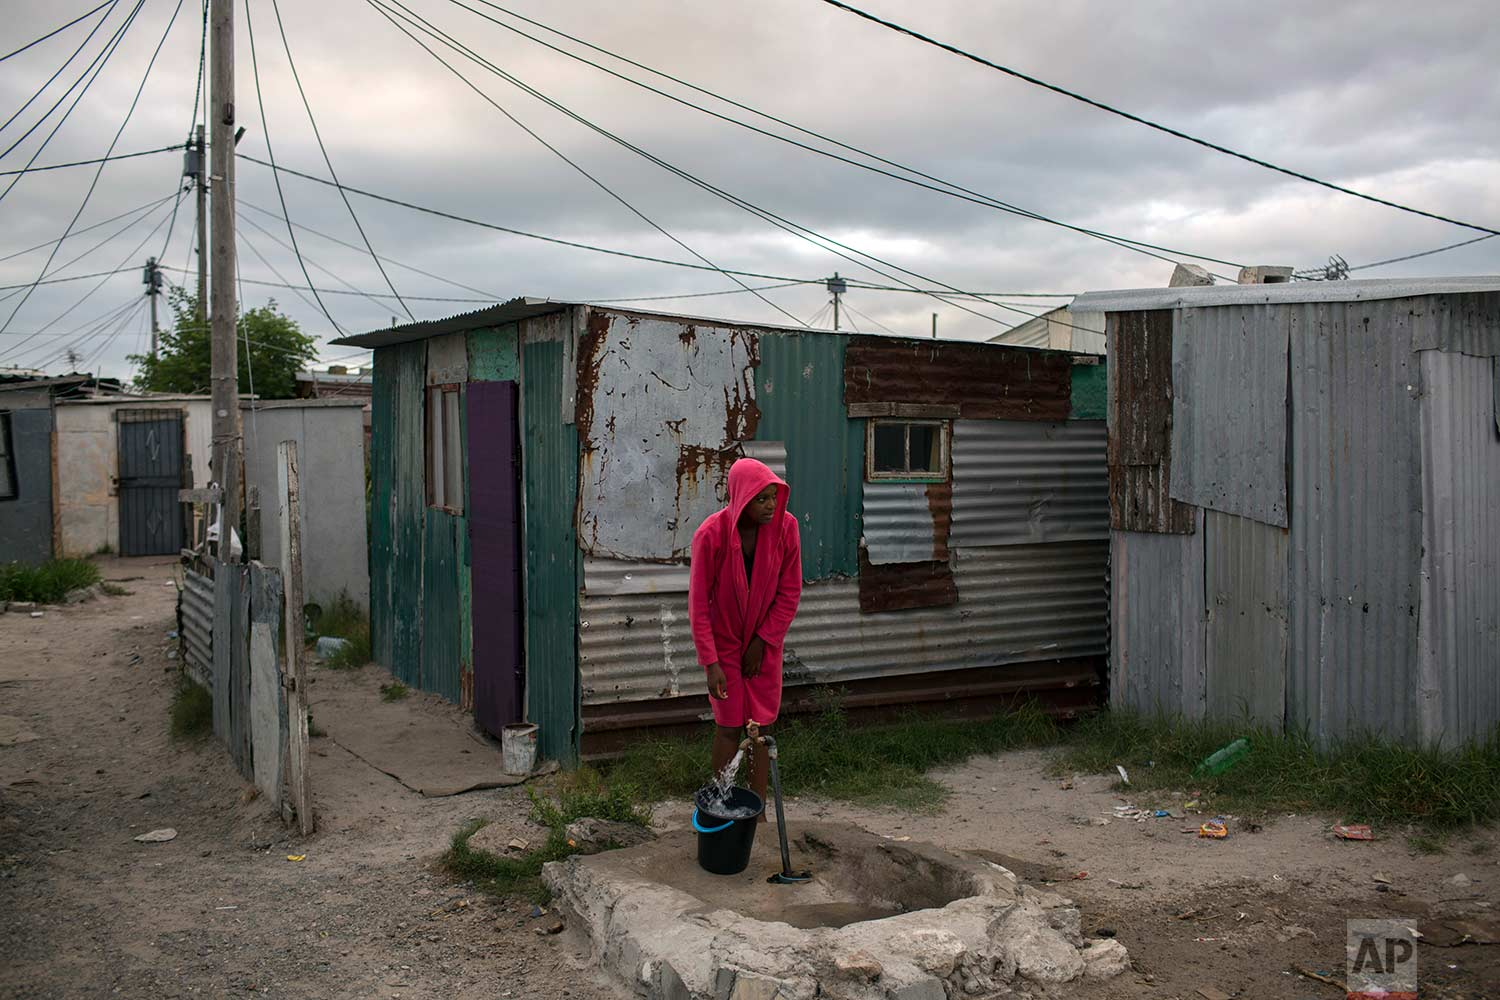 A woman collects water in a settlement near Cape Town on Friday, Feb. 2, 2018. (AP Photo/Bram Janssen)